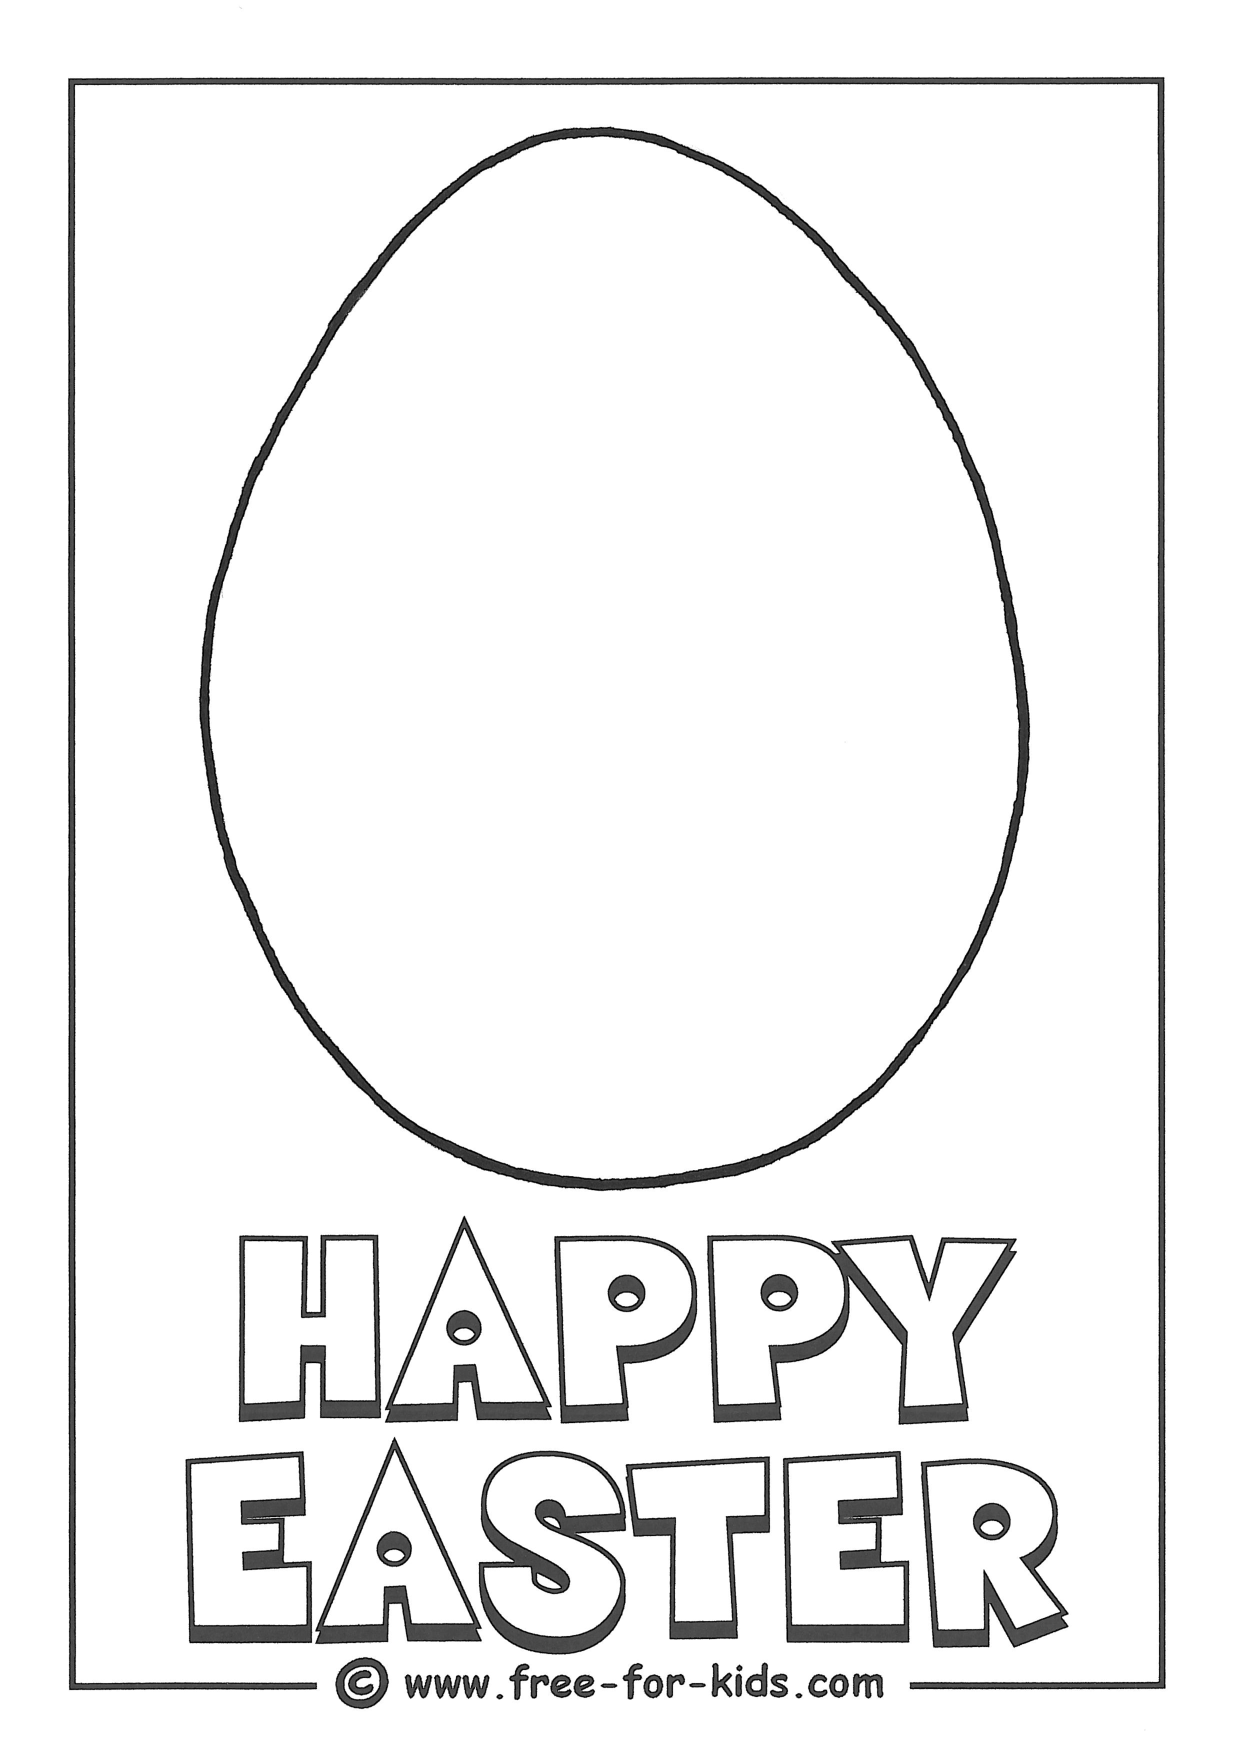 Blank Easter Egg Outline To Decorate Easter Egg Outline Template Printable Printable Chart